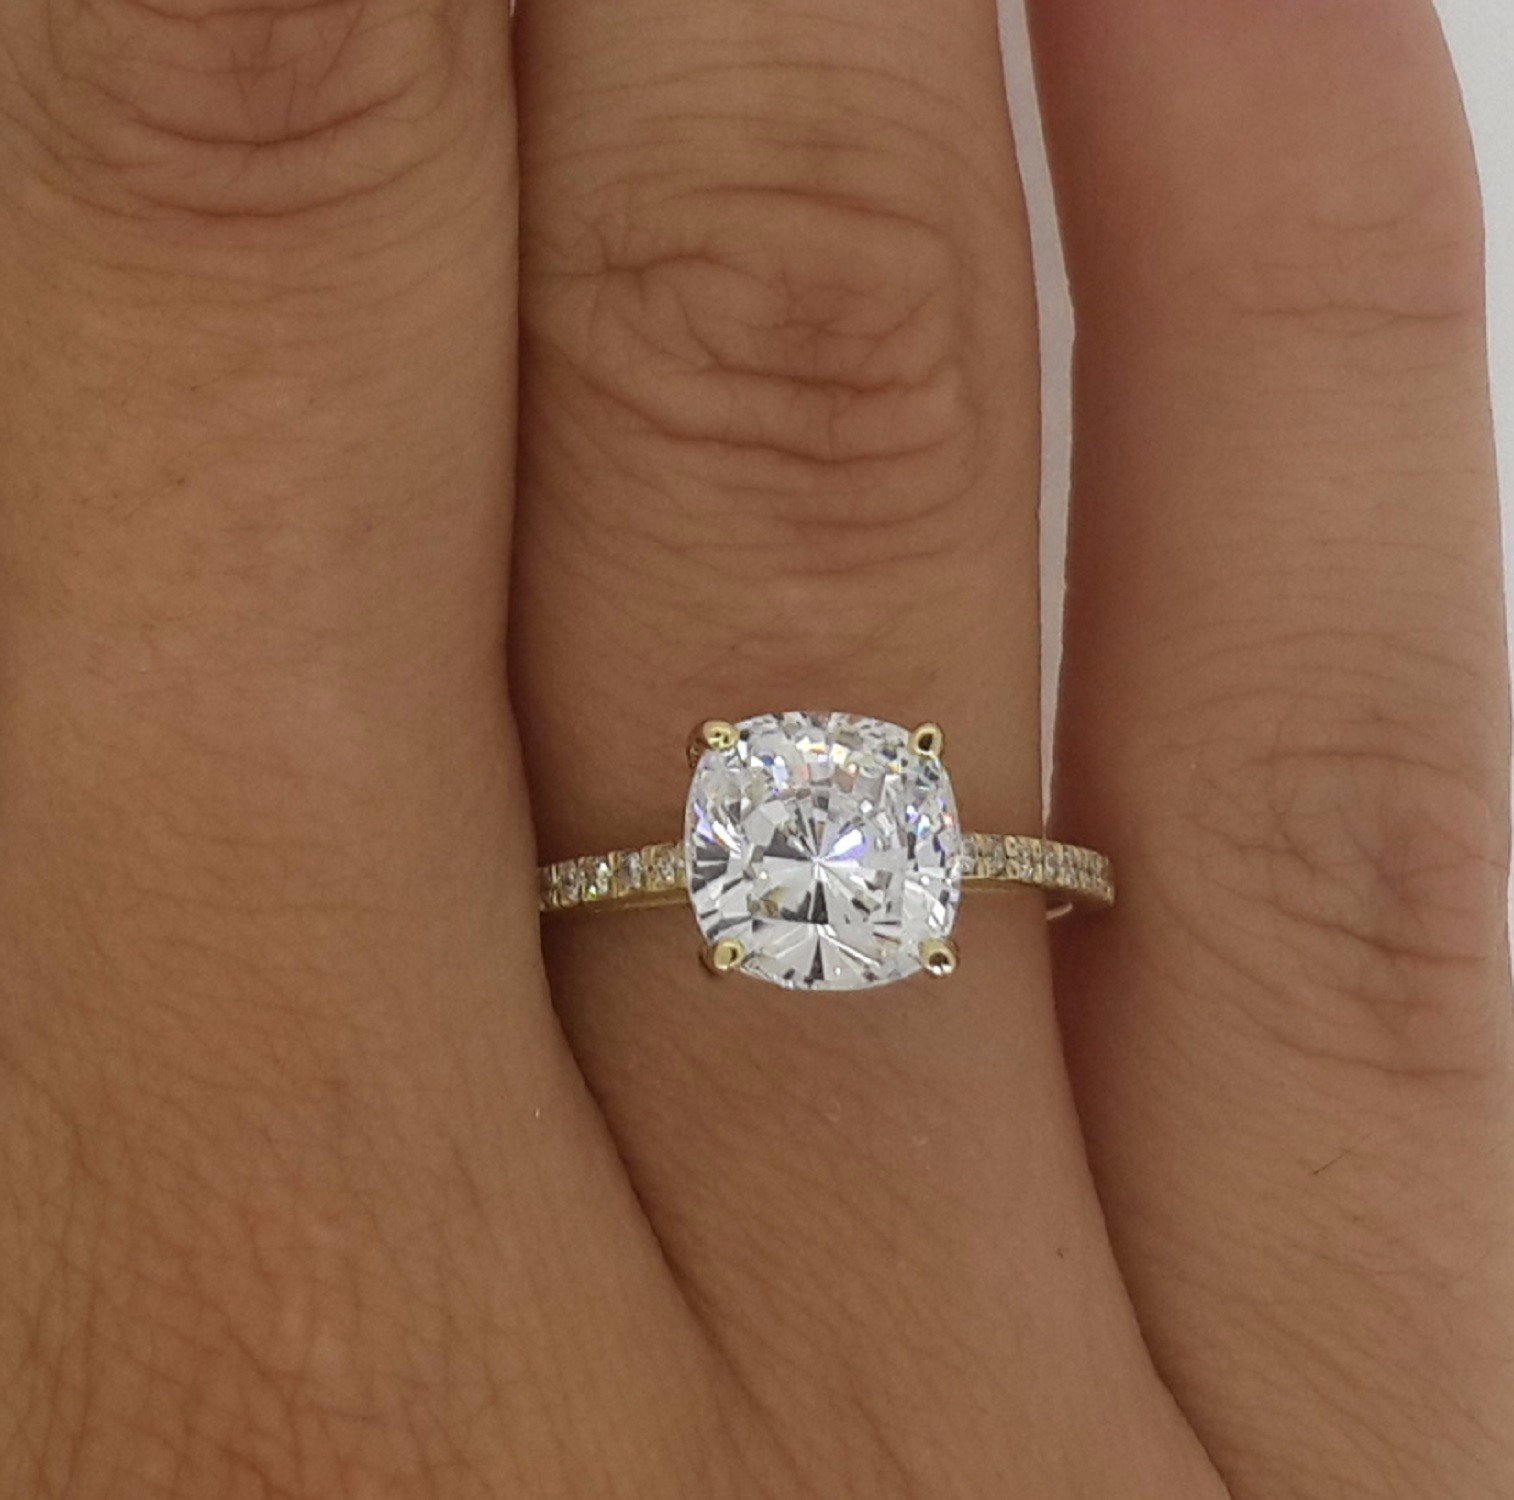 2 50 CT CUSHION CUT VS DIAMOND SOLITAIRE ENGAGEMENT RING 14K GOLD